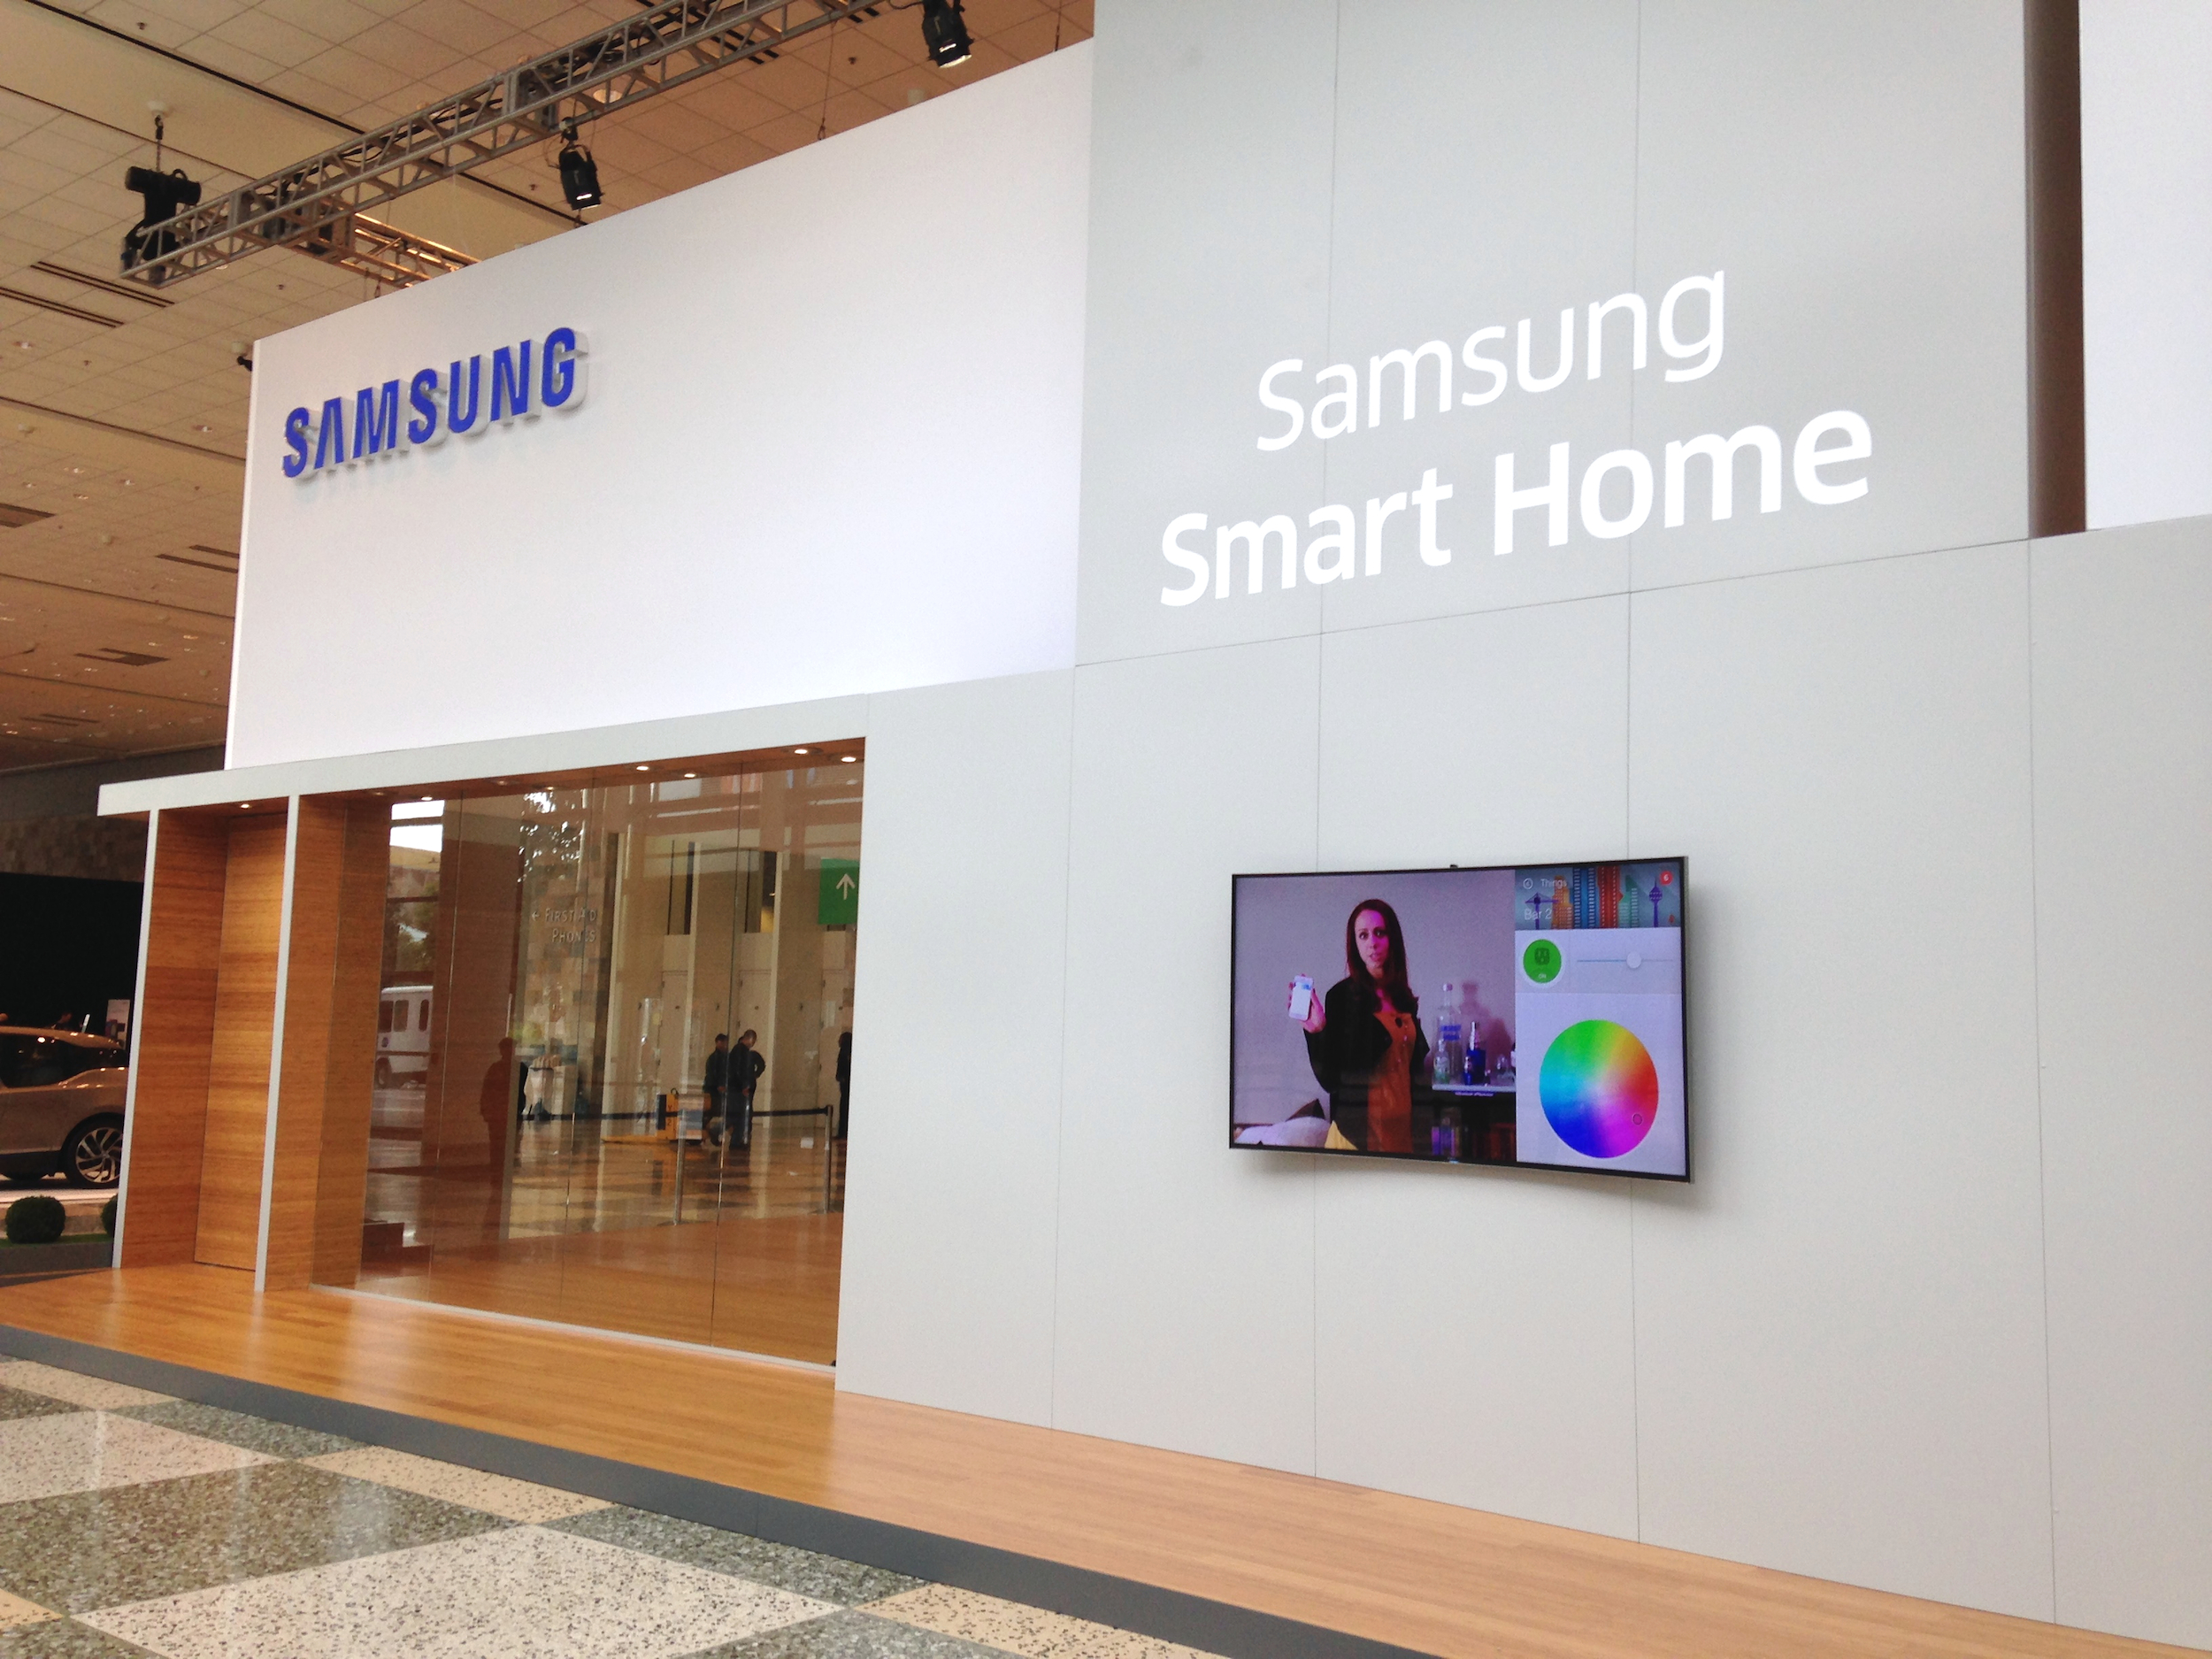 smartthings powers the samsung smart home smartthings. Black Bedroom Furniture Sets. Home Design Ideas